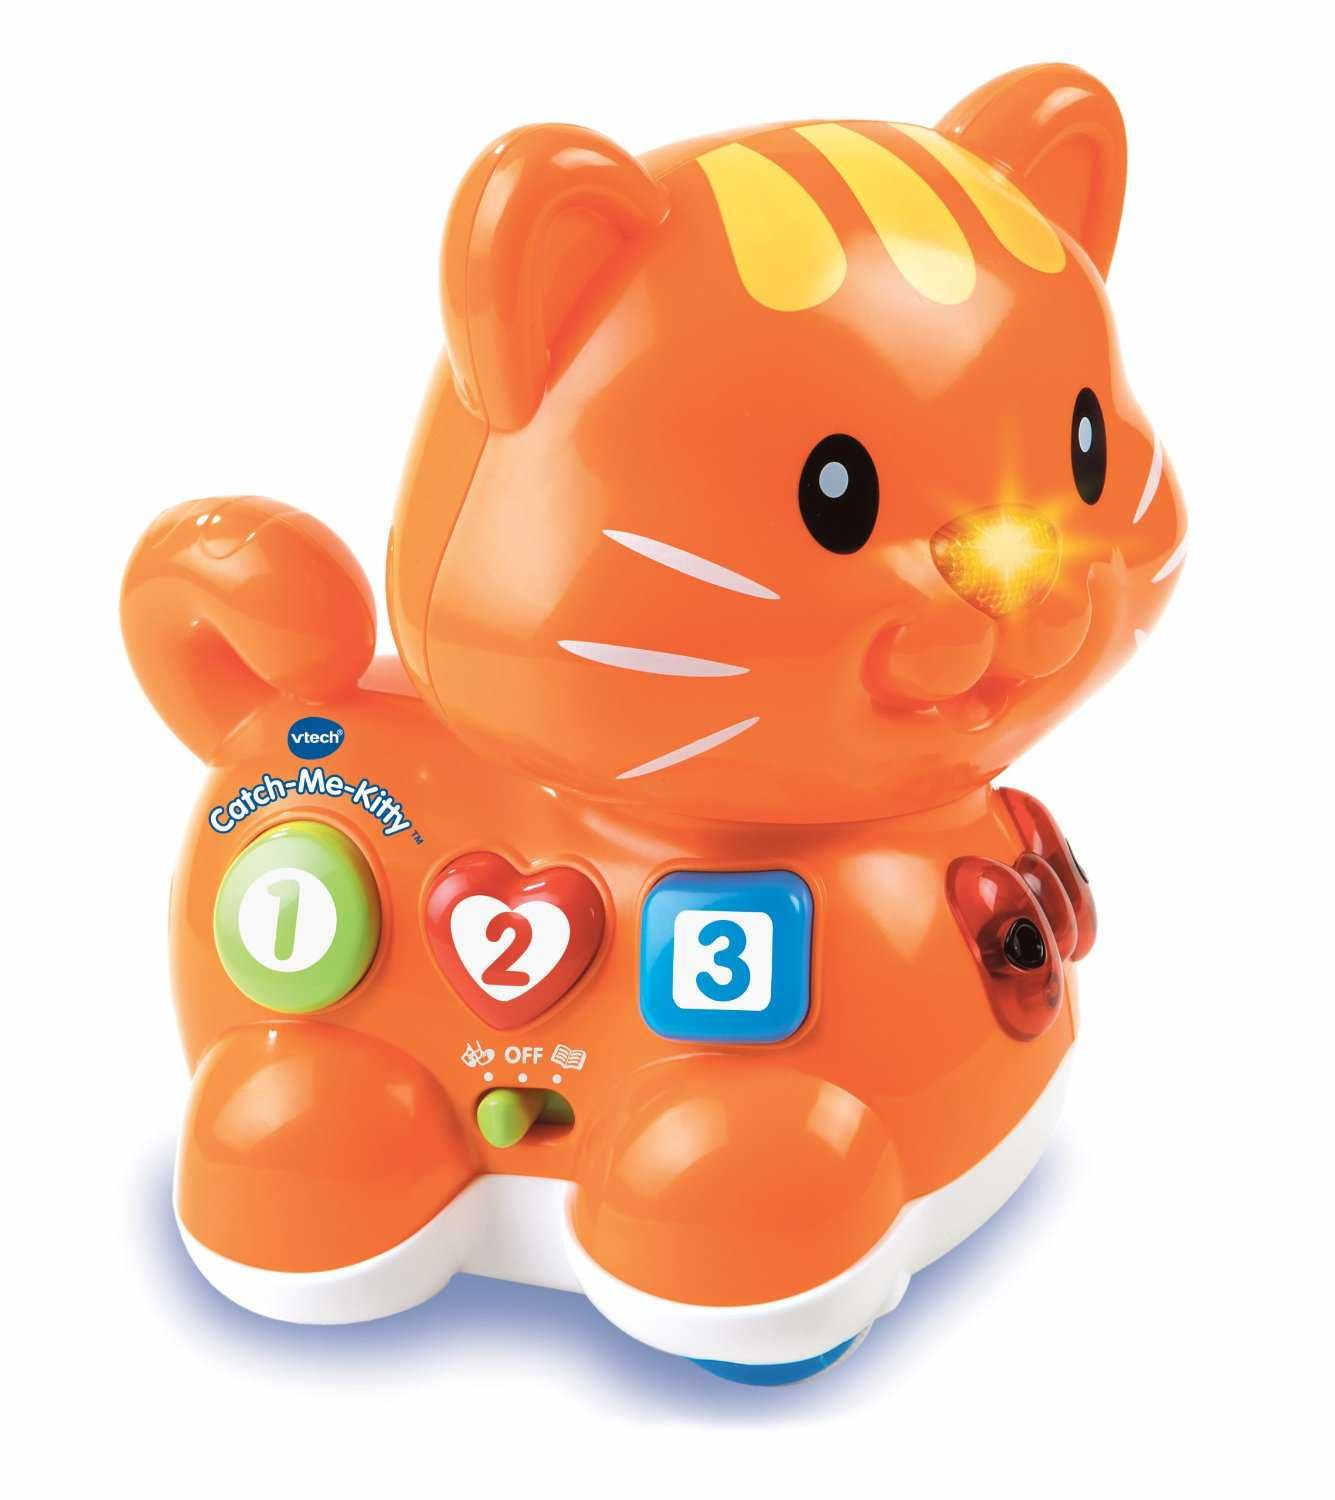 Toys and me images  Cheap VTech Catch Me Kitty Cute kitten rolls for chasing play Sensor